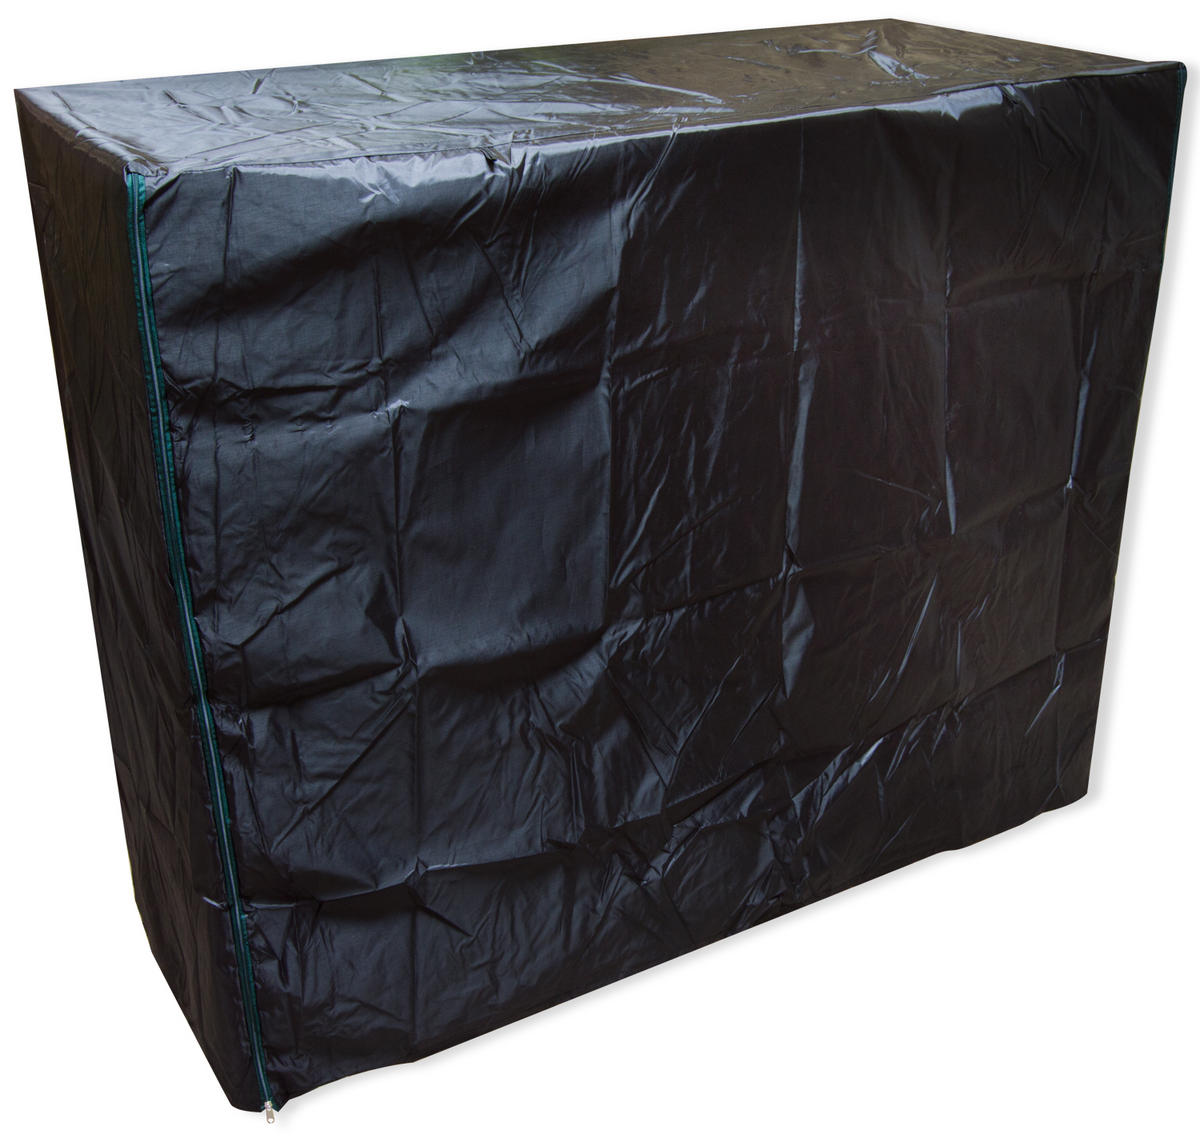 Woodside Barbecue Cover